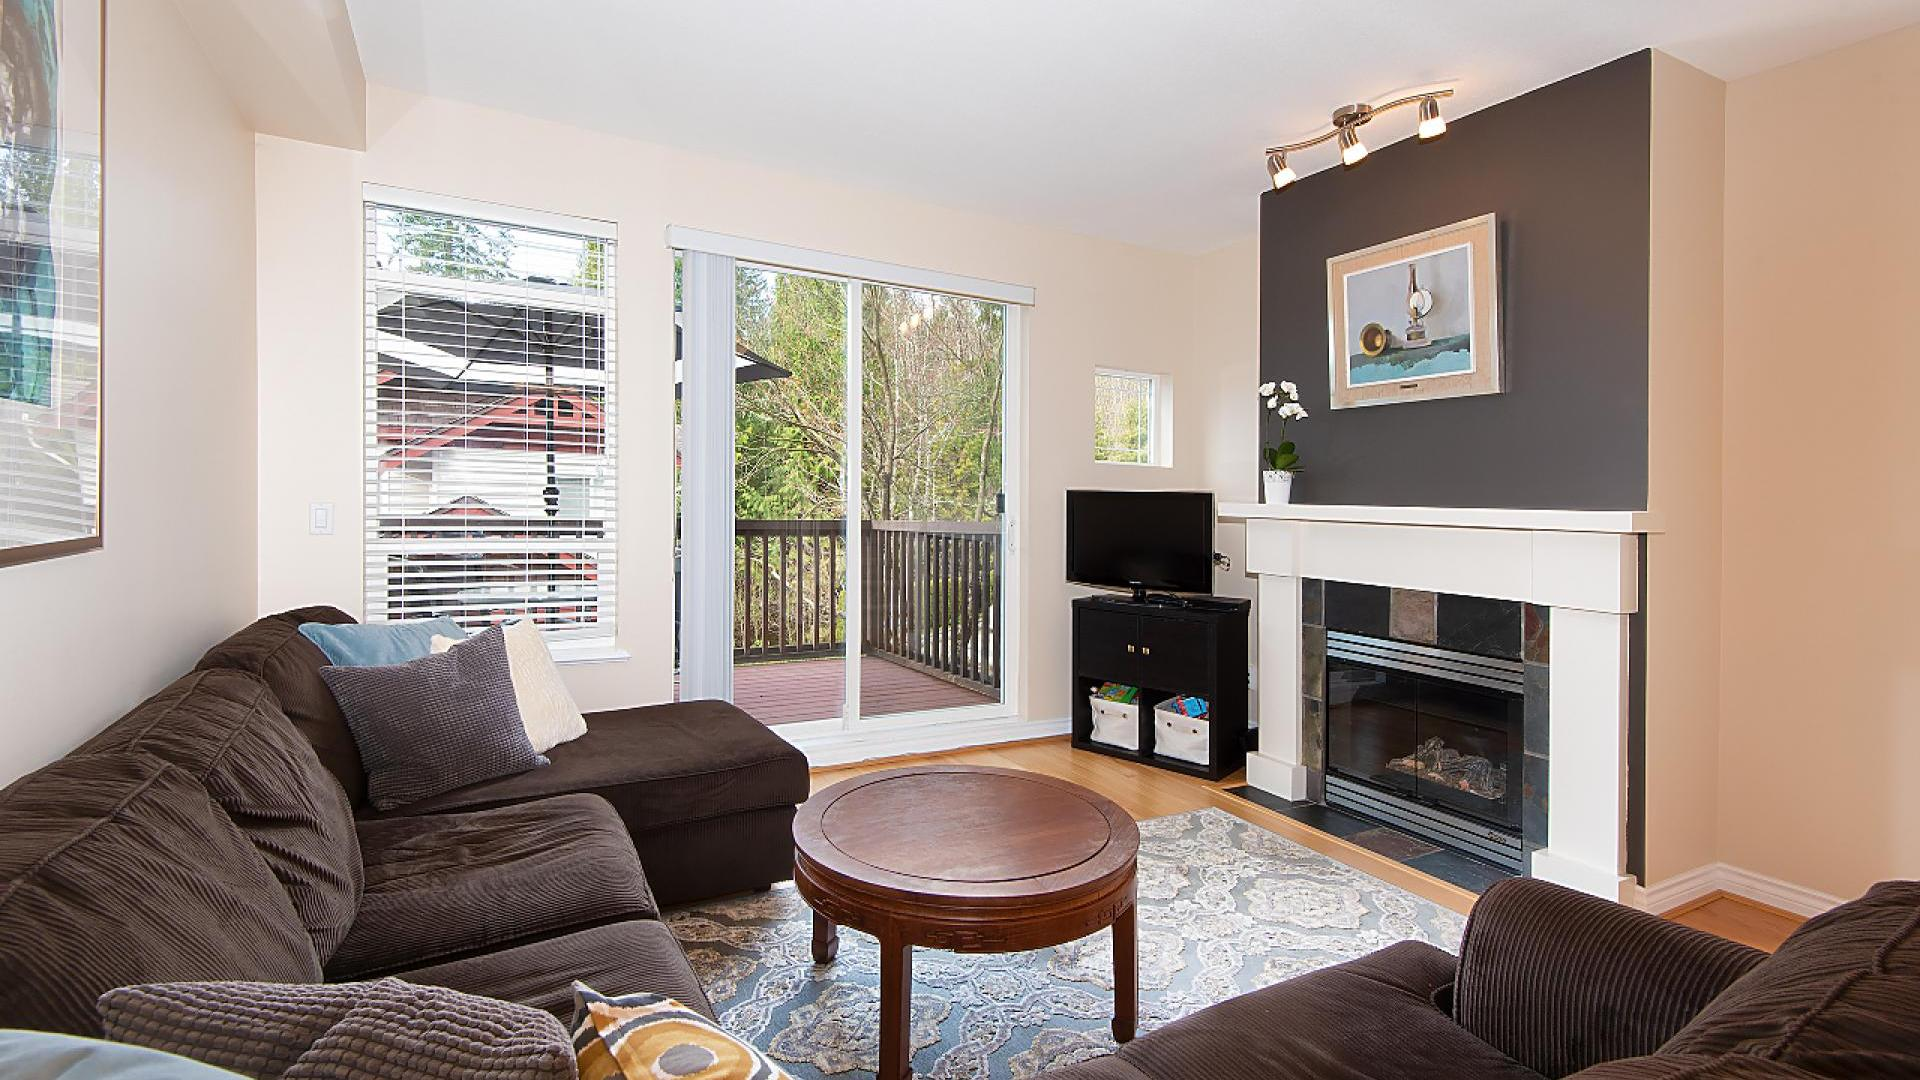 53 - 15 Forest Park Way, Heritage Woods PM, Port Moody